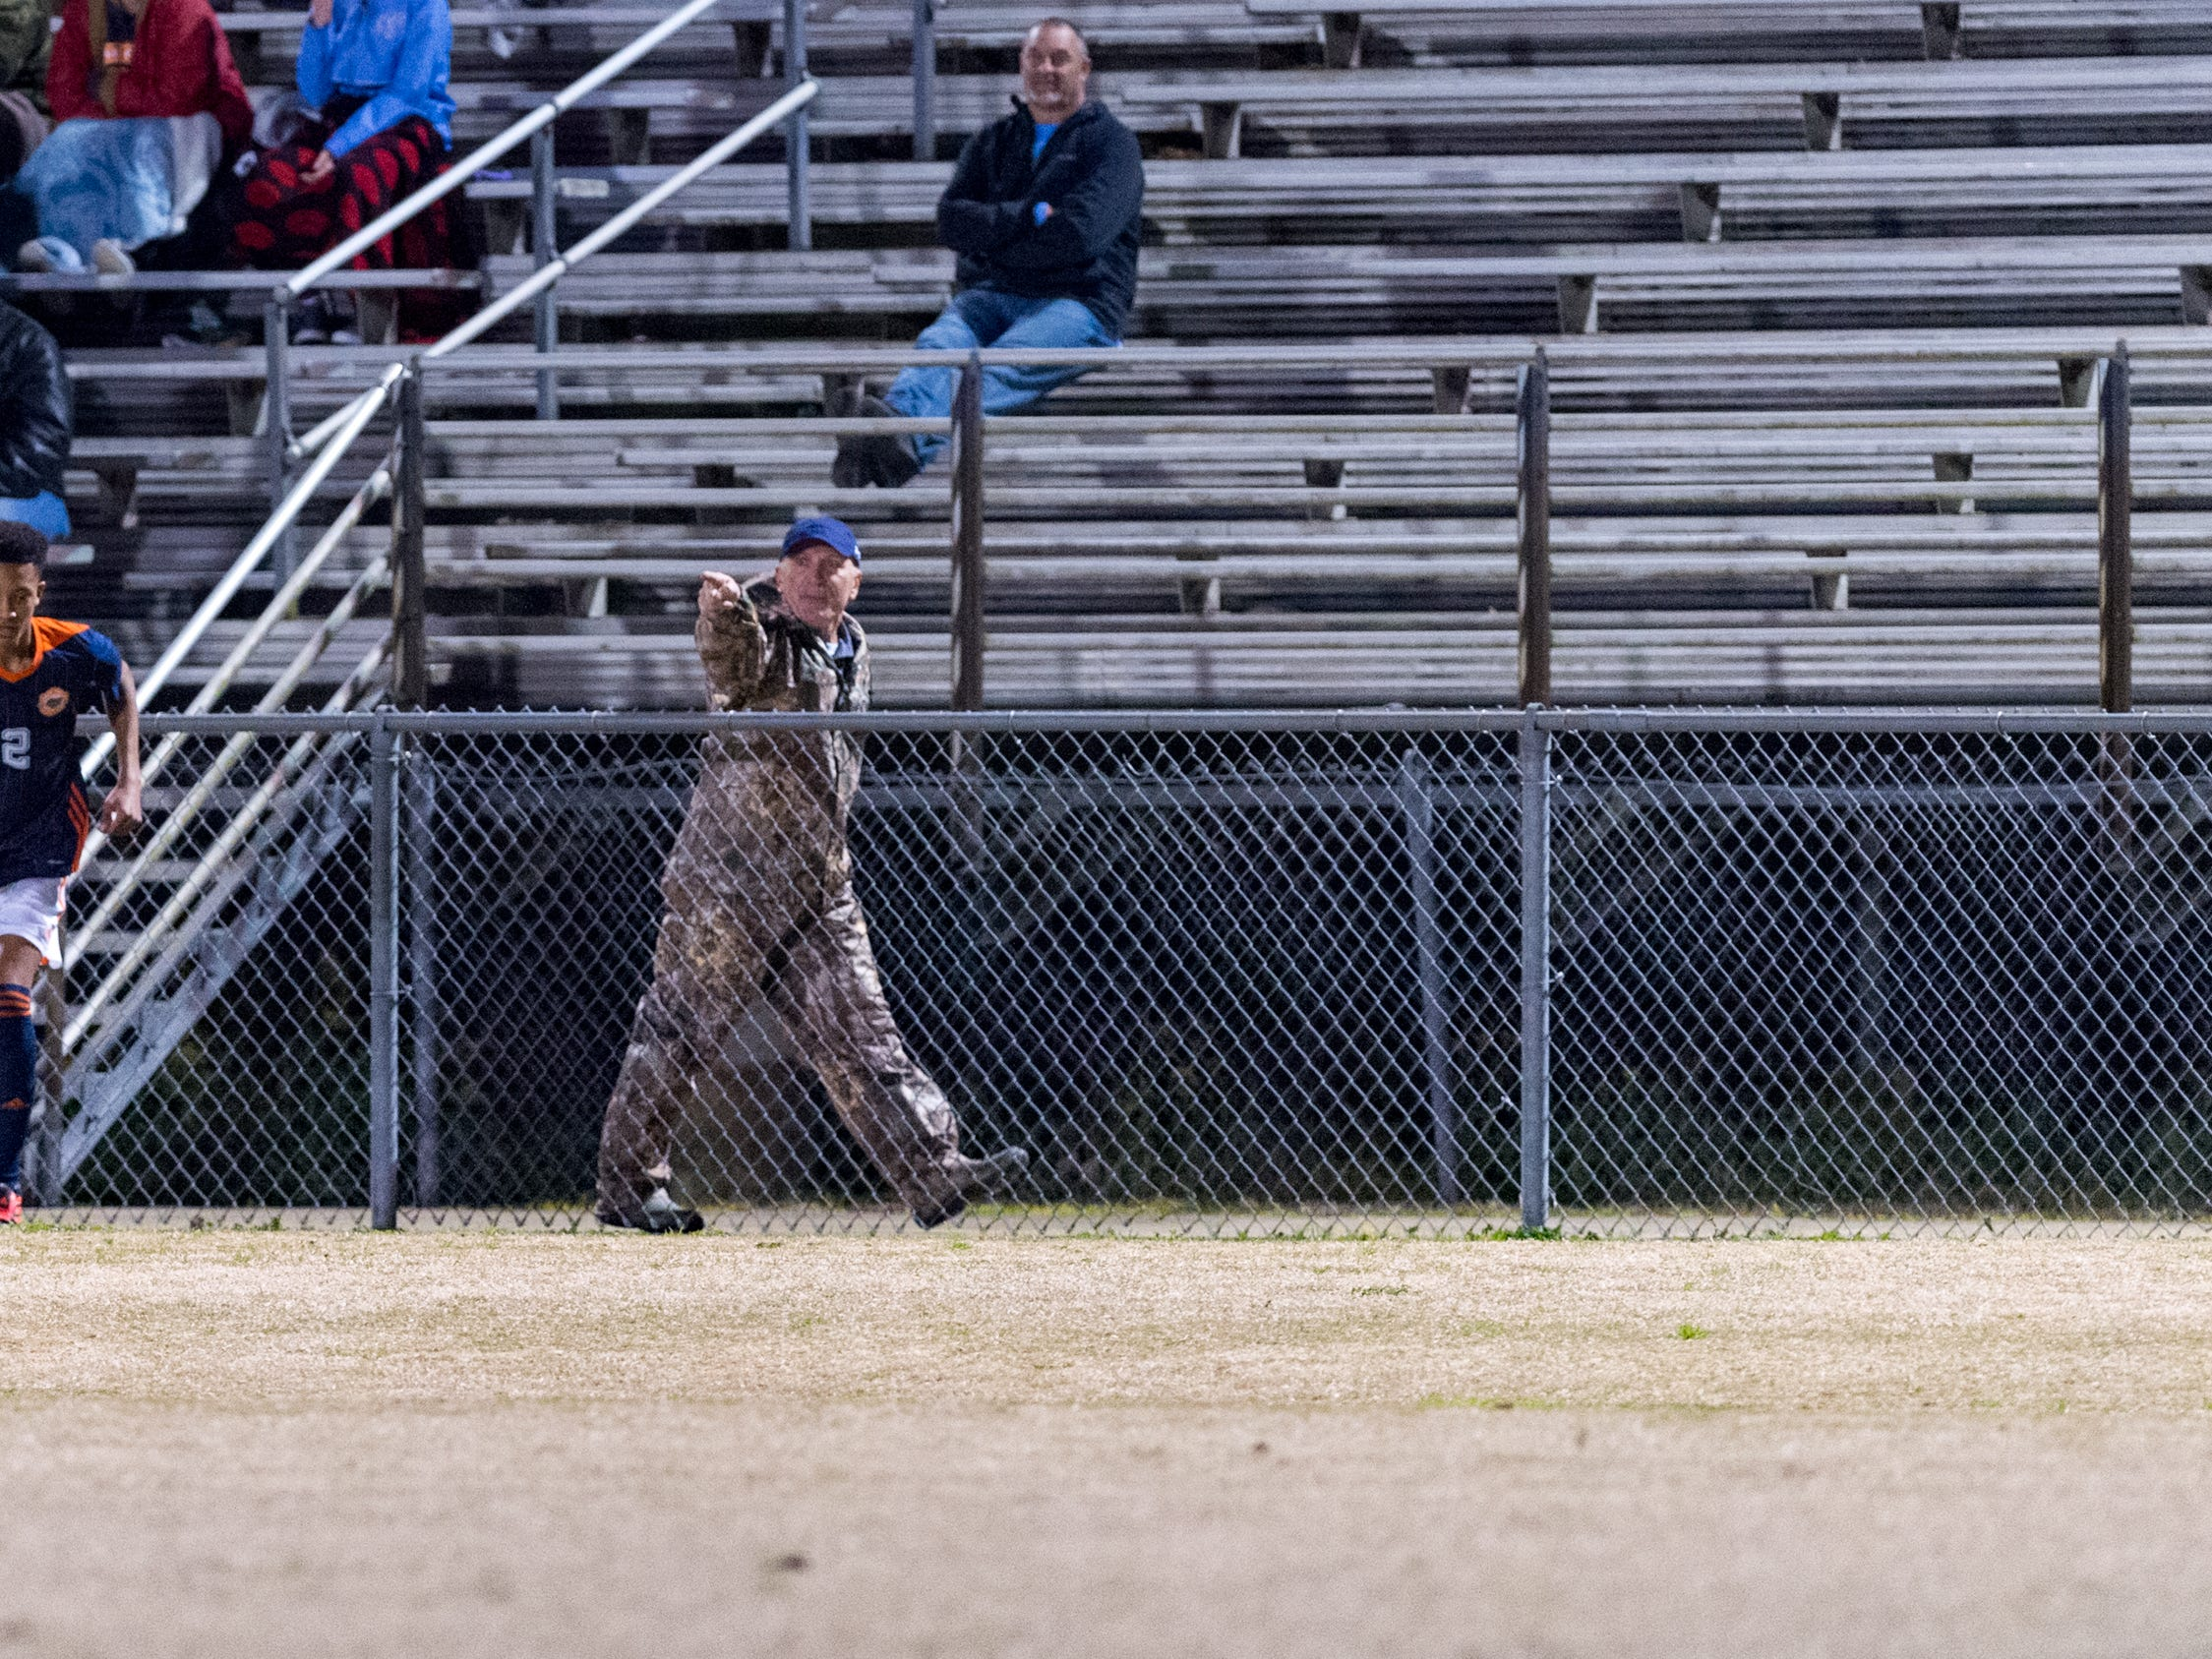 Game officials eject fan from the game as Beau Chene takes on STM in Boys soccer. Tuesday, Jan. 22, 2019.